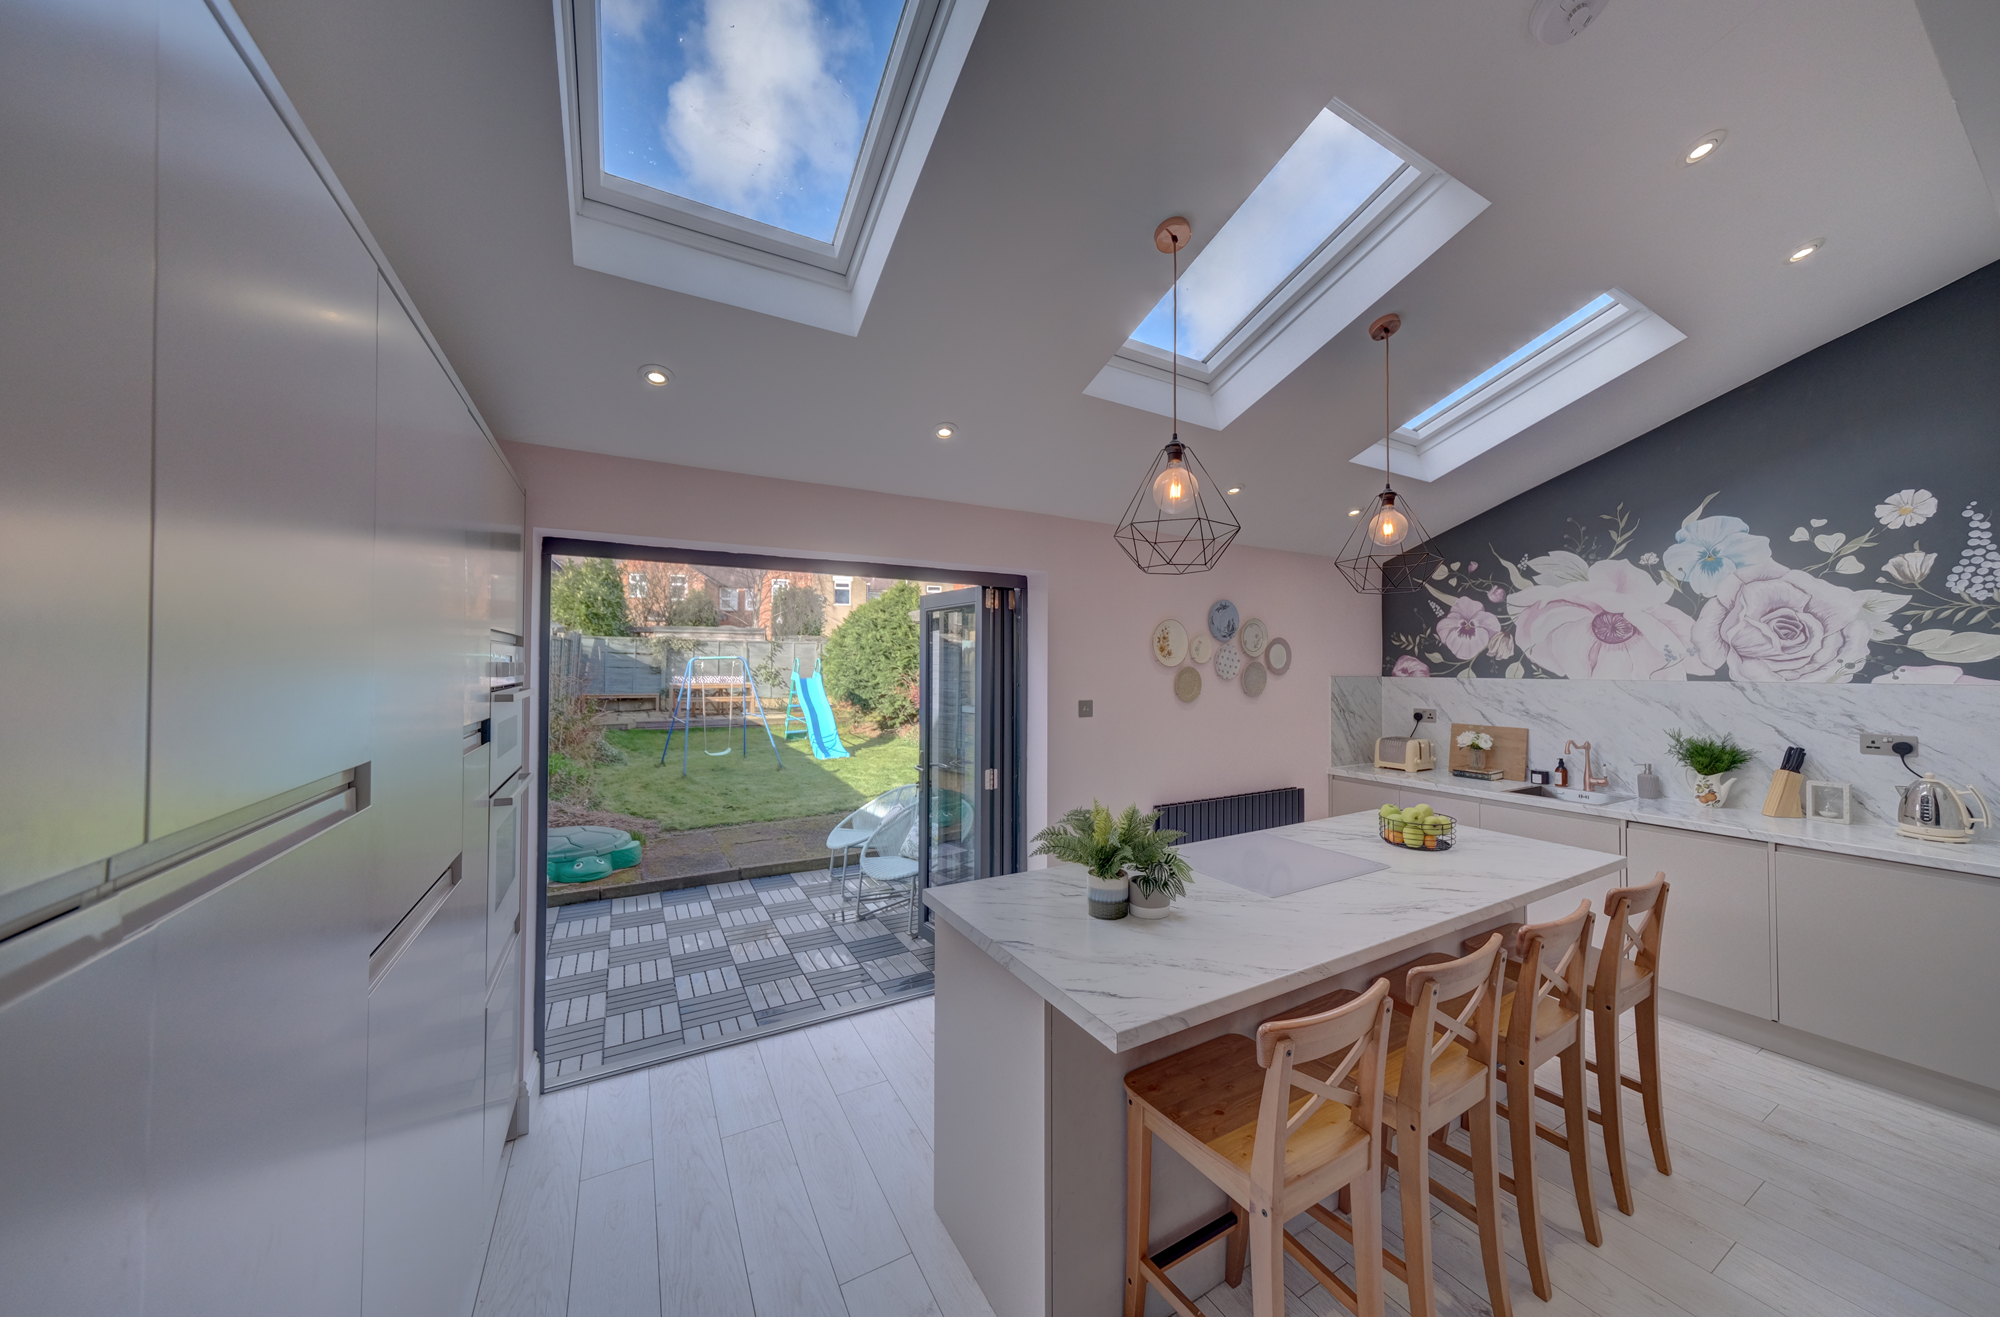 Priesthills Road, Hinckley - A success story - luxury living kitchen with bi fold doors